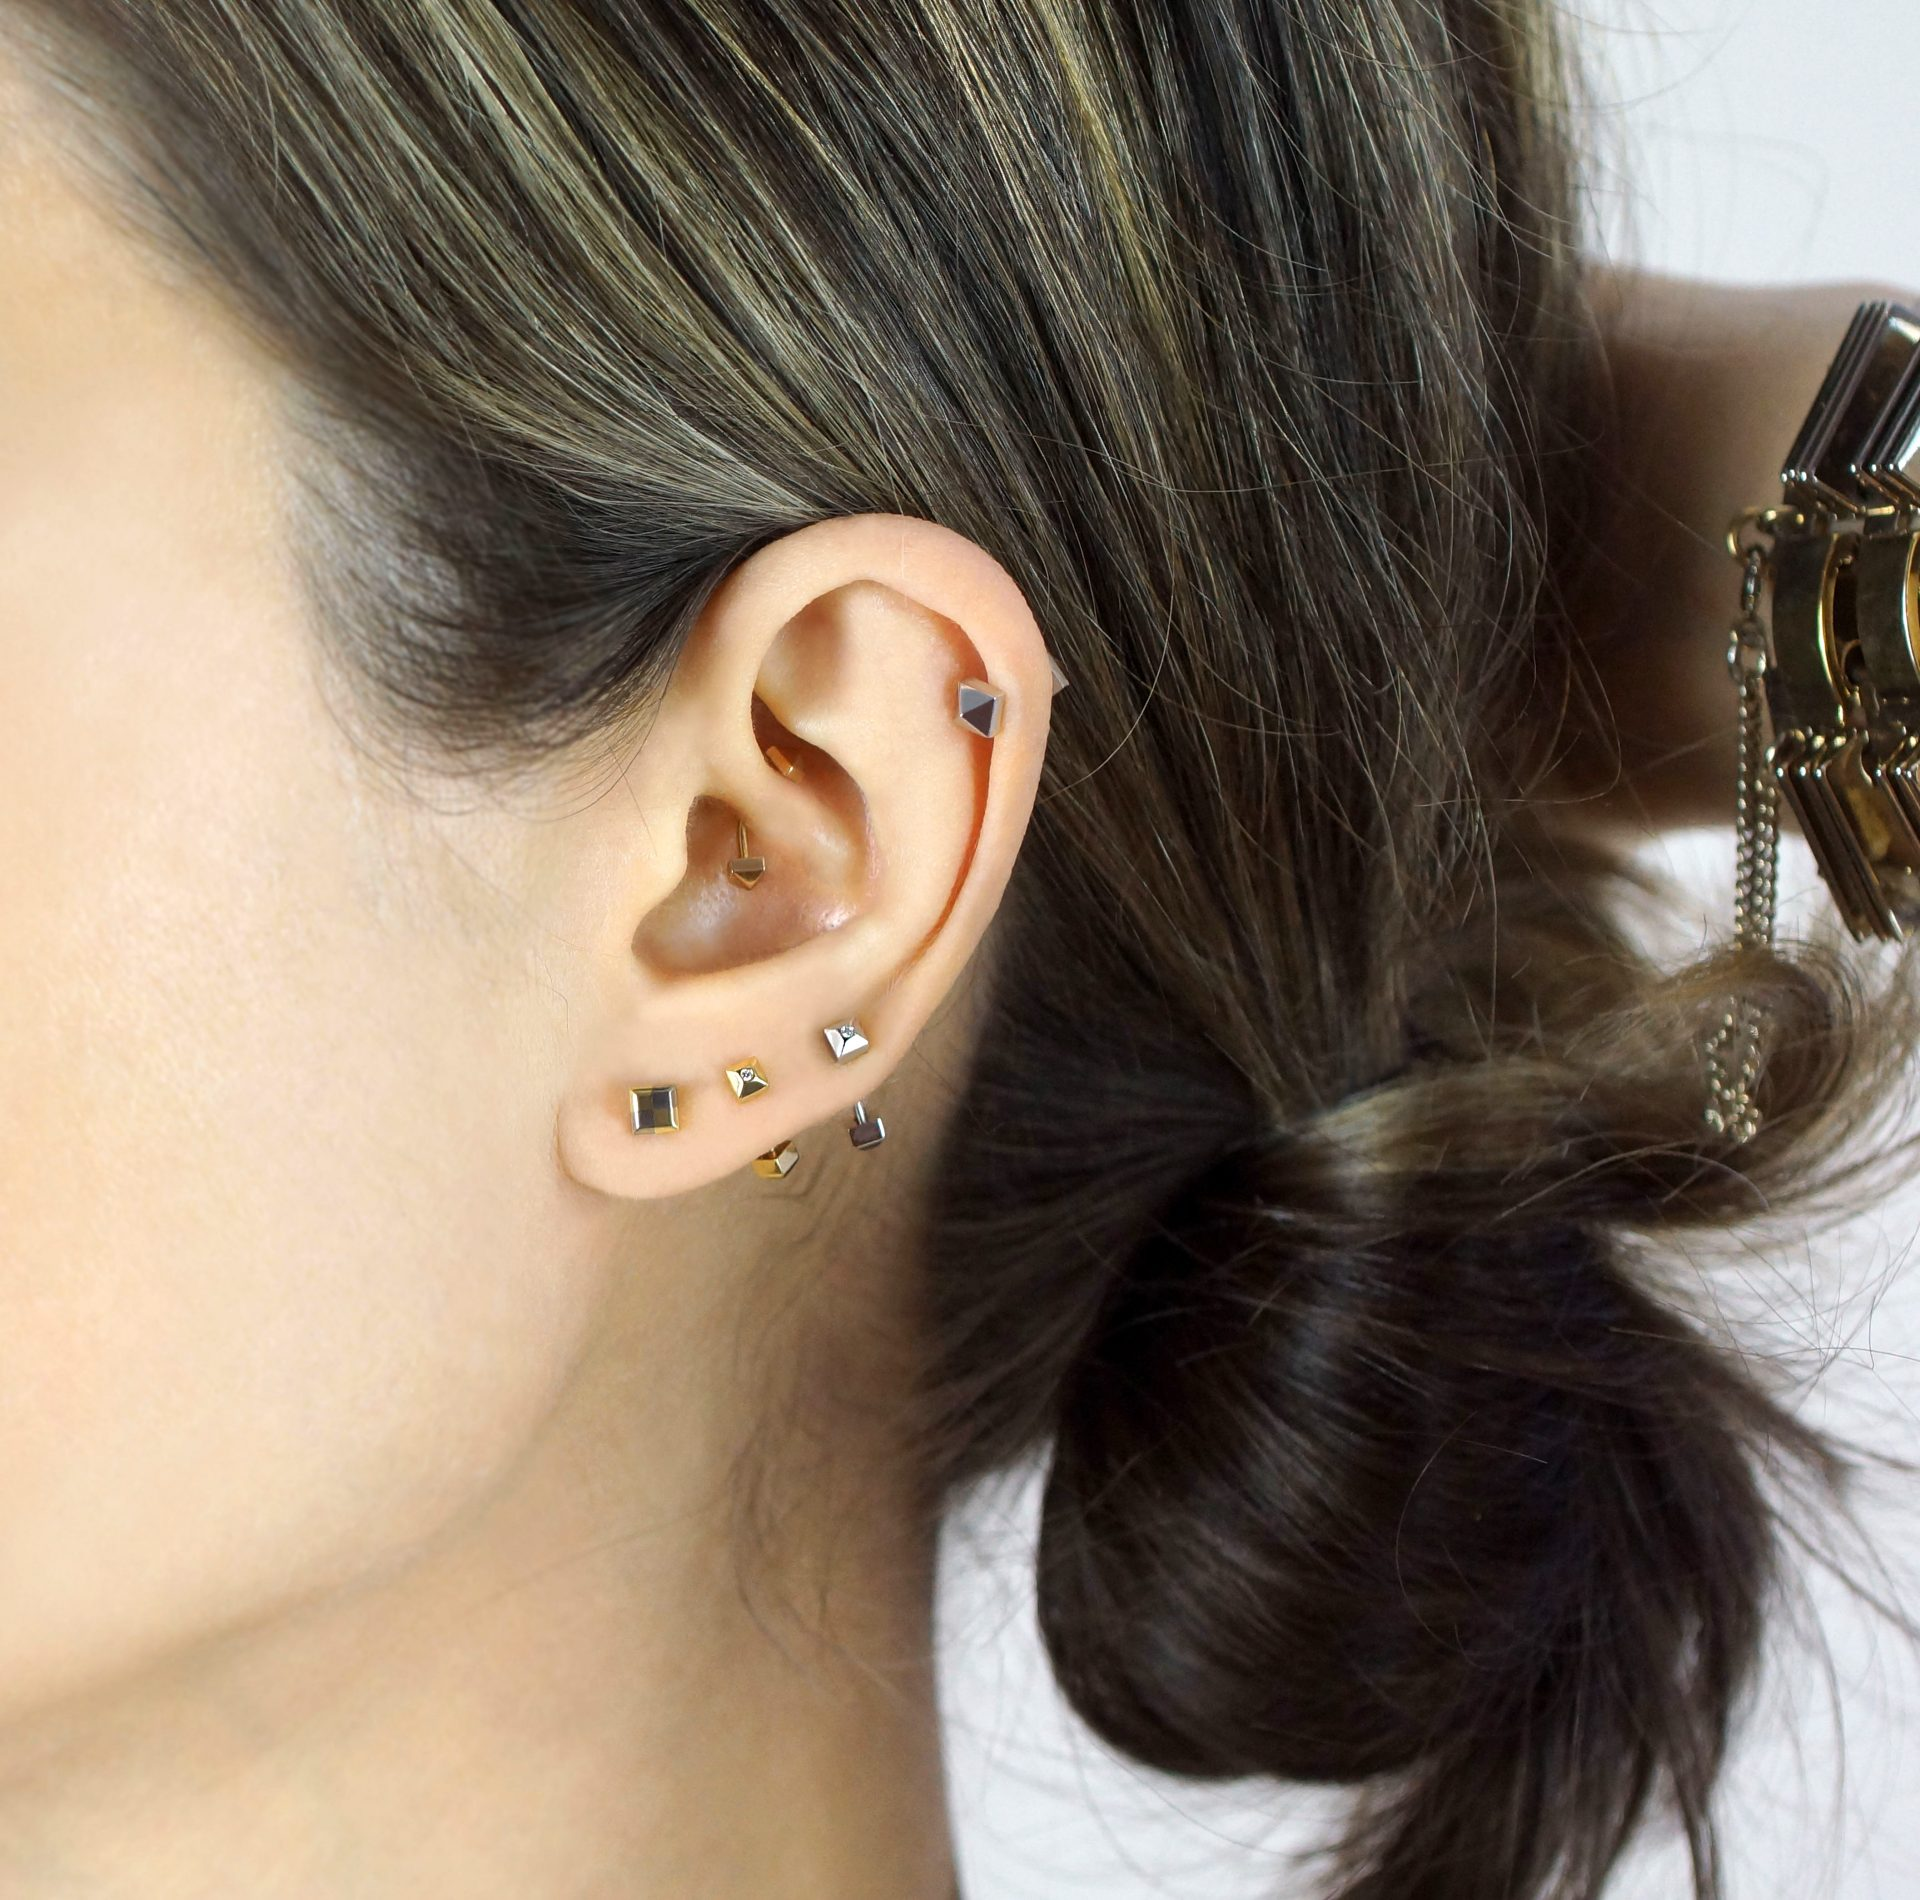 unisex-piercing-daith-barbell-lena-cohen-uk-london-18k-gold